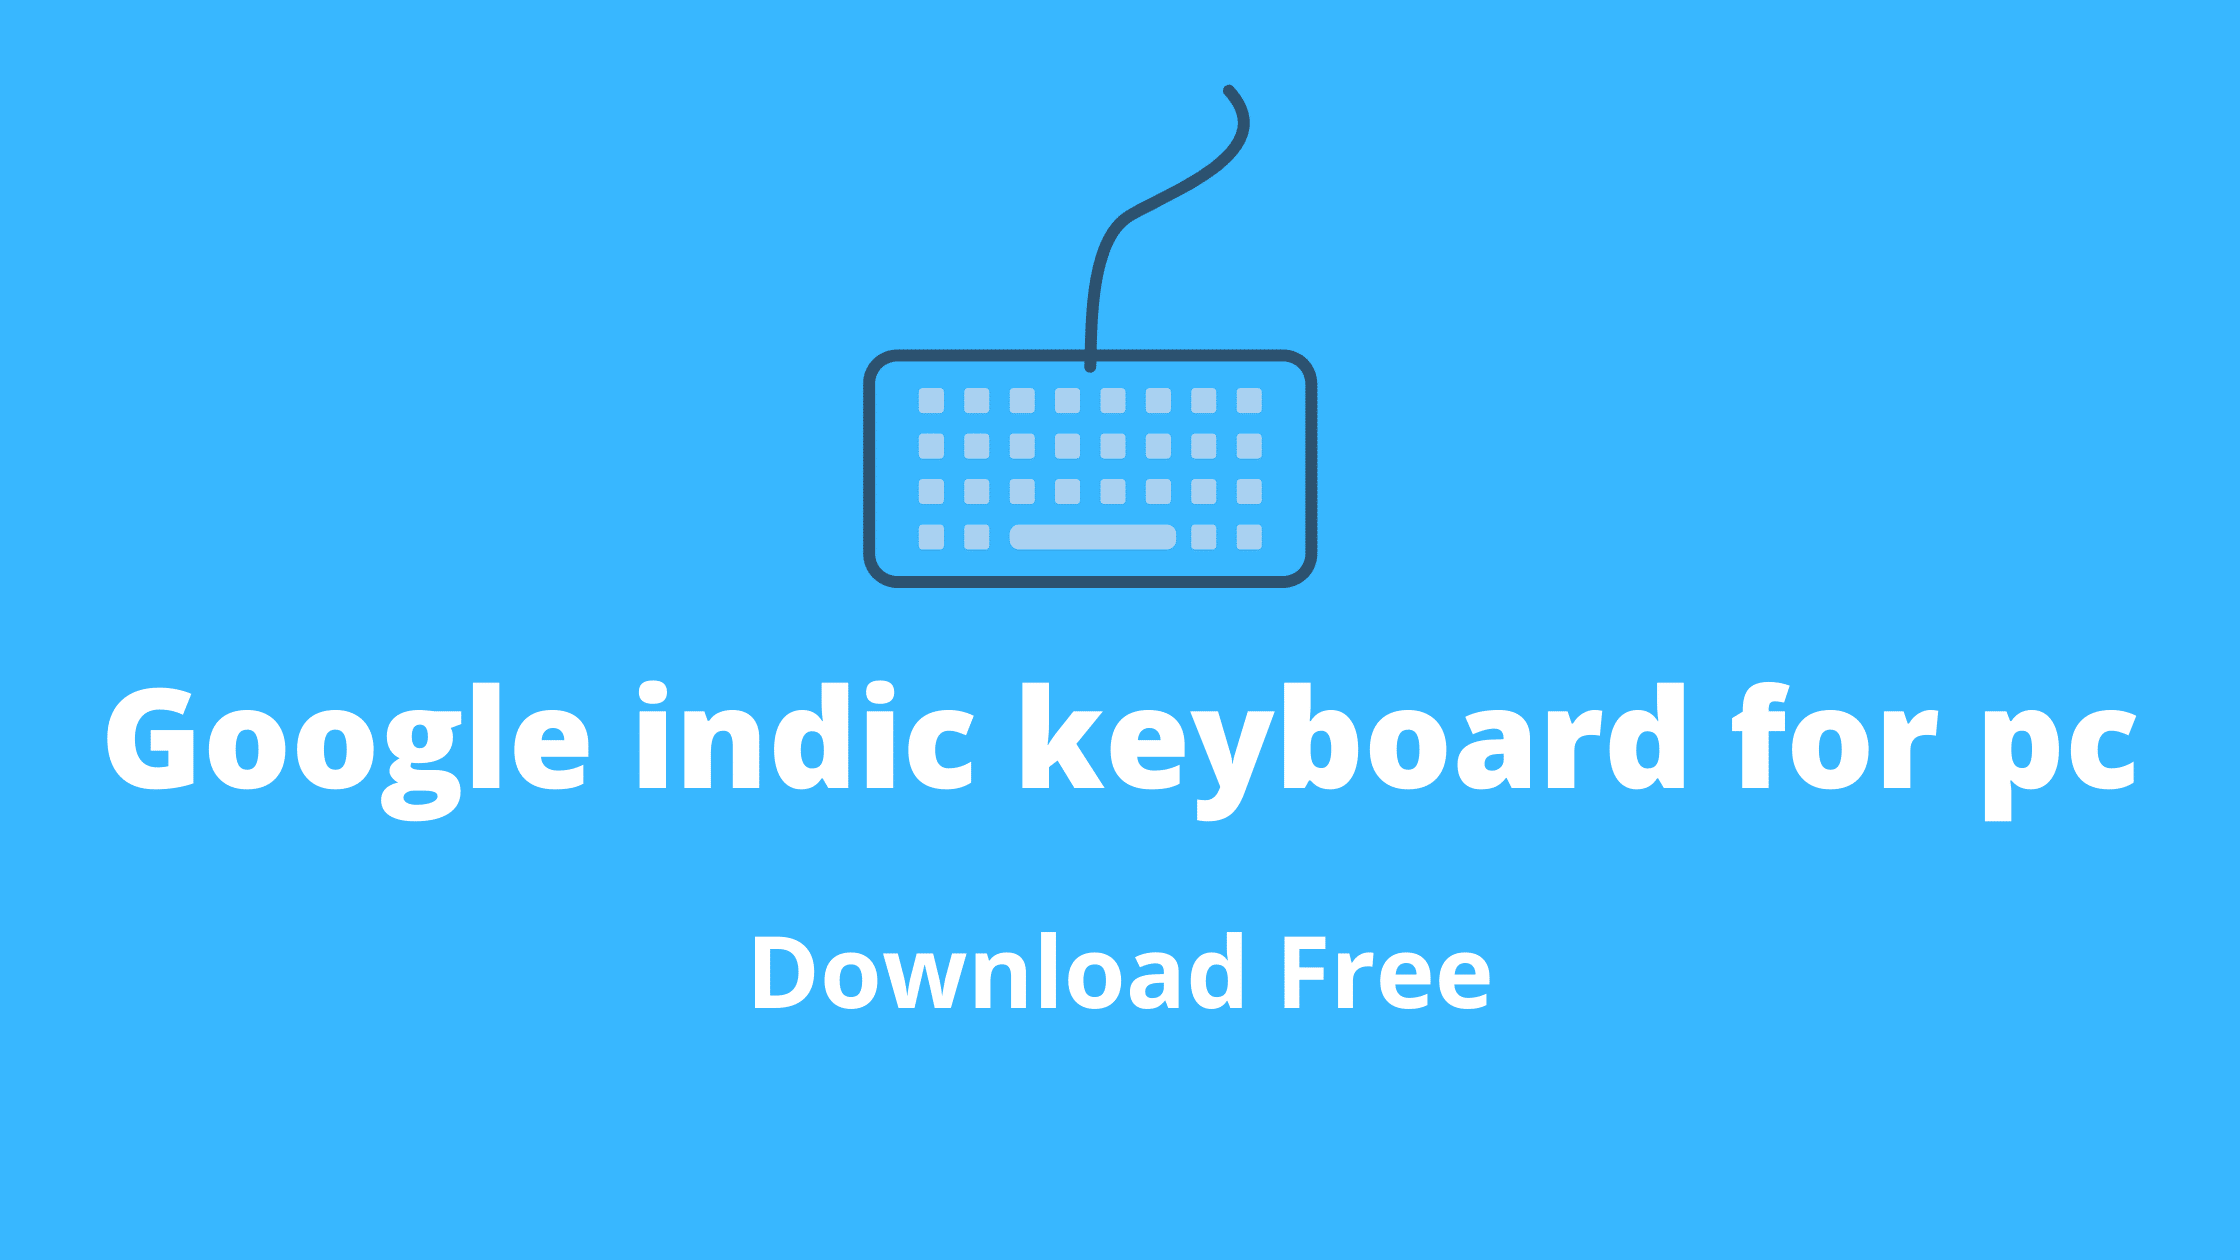 Google indic keyboard for pc(